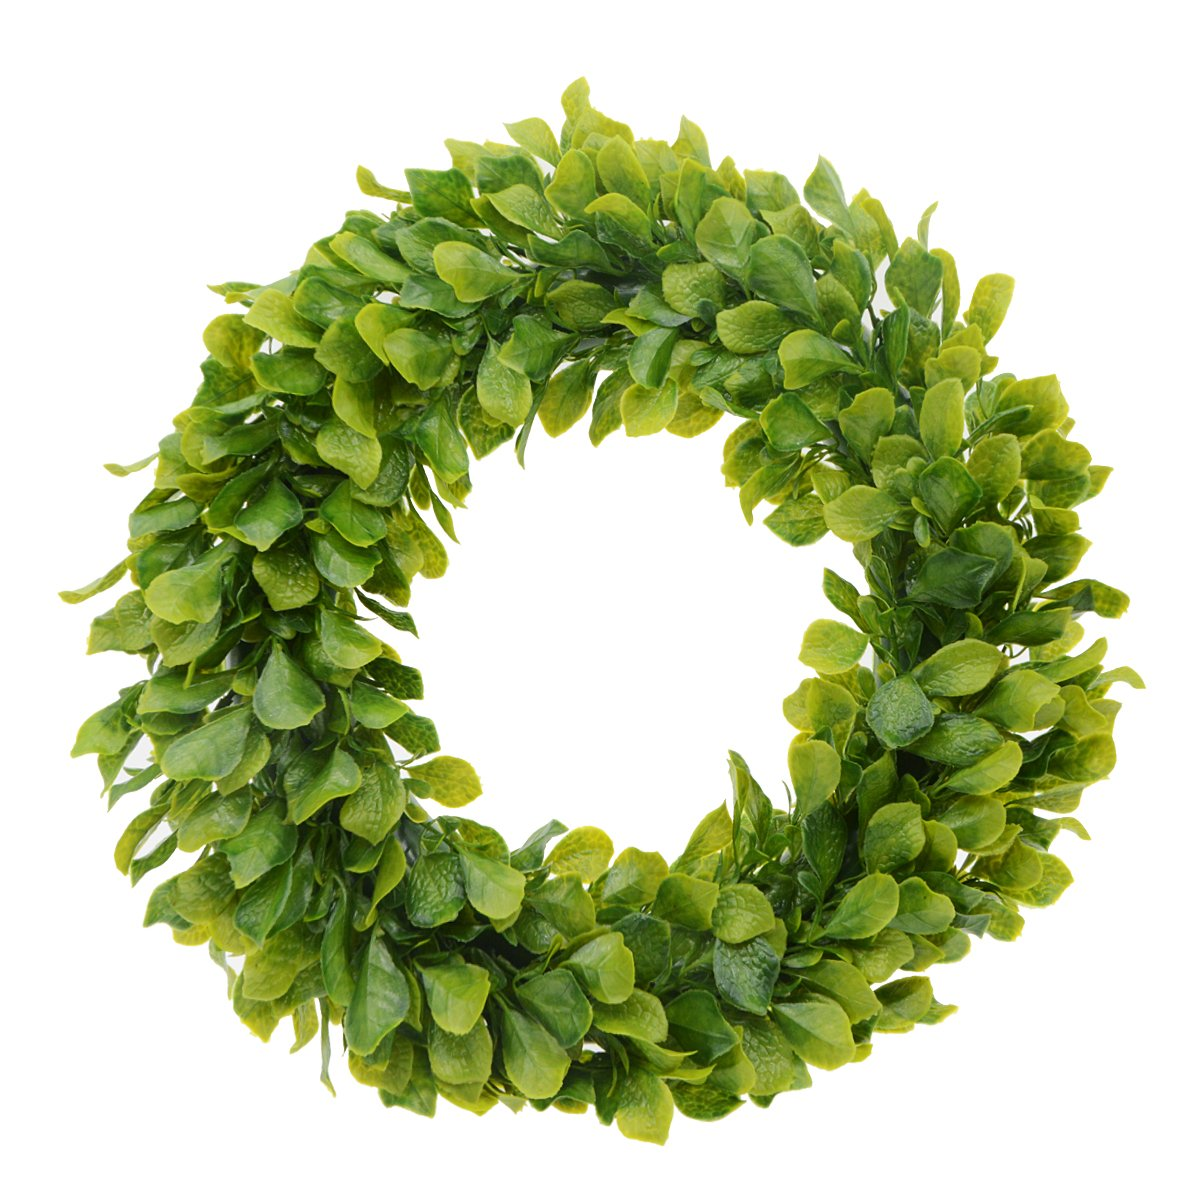 Saim 15''-16'' Artificial Round Wreath Spring Front Door Wreath Garland Home Office Wall Wedding Decor